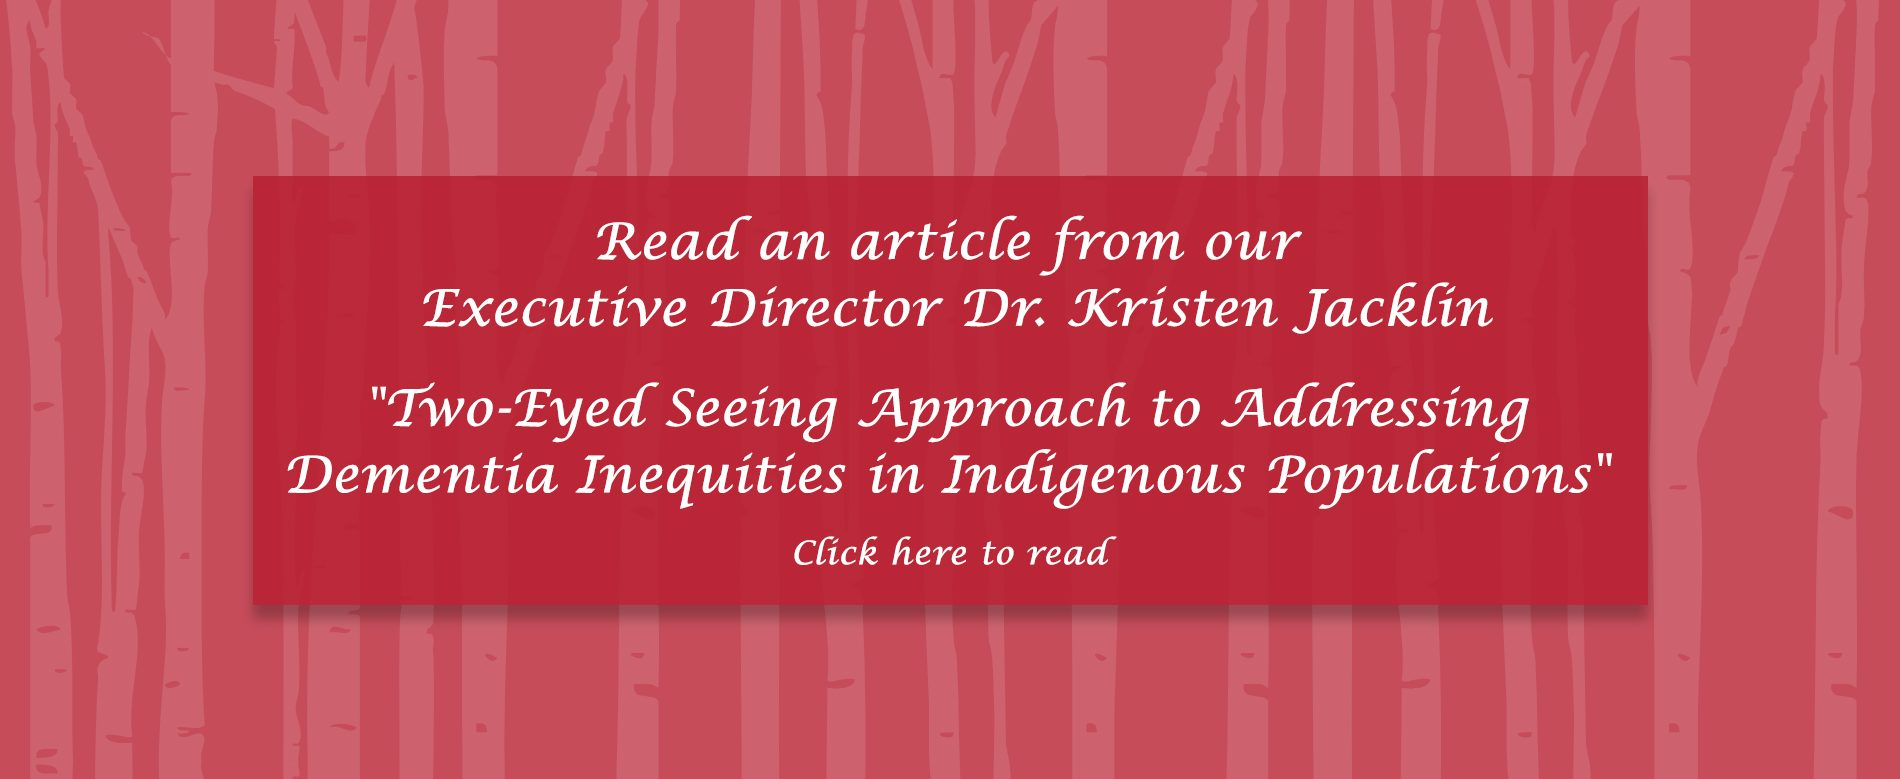 """Read an article from our Executive Director Dr. Kristen Jacklin """"Two-Eyed Seeing Approach to Addressing Dementia Inequities in Indigenous Populations"""""""